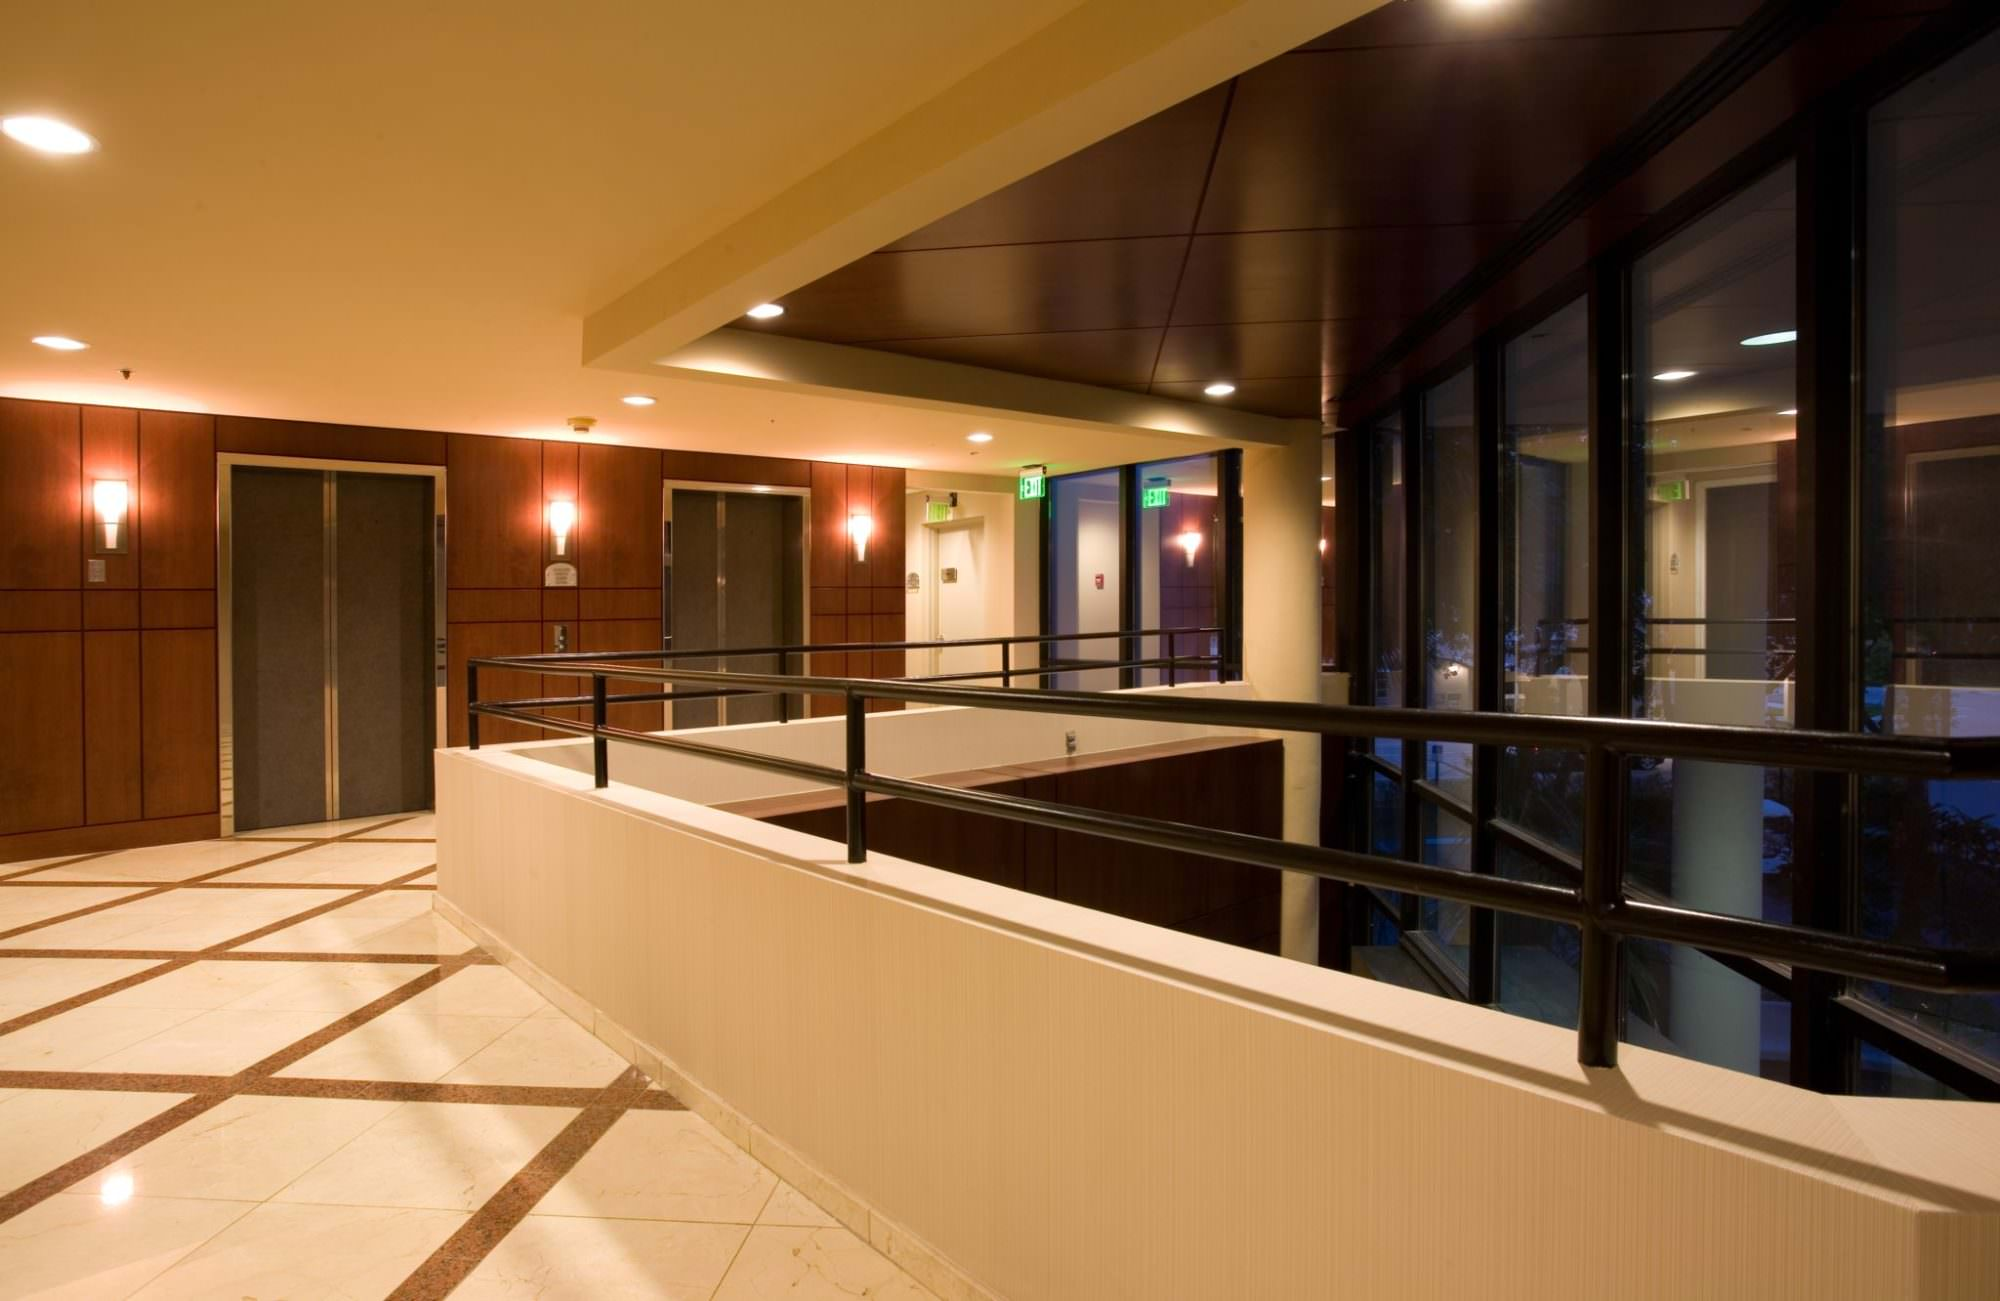 June 12th, 2012 - West Palm Beach, Florida: The 2nd Floor Lobby of the Horizons office building.